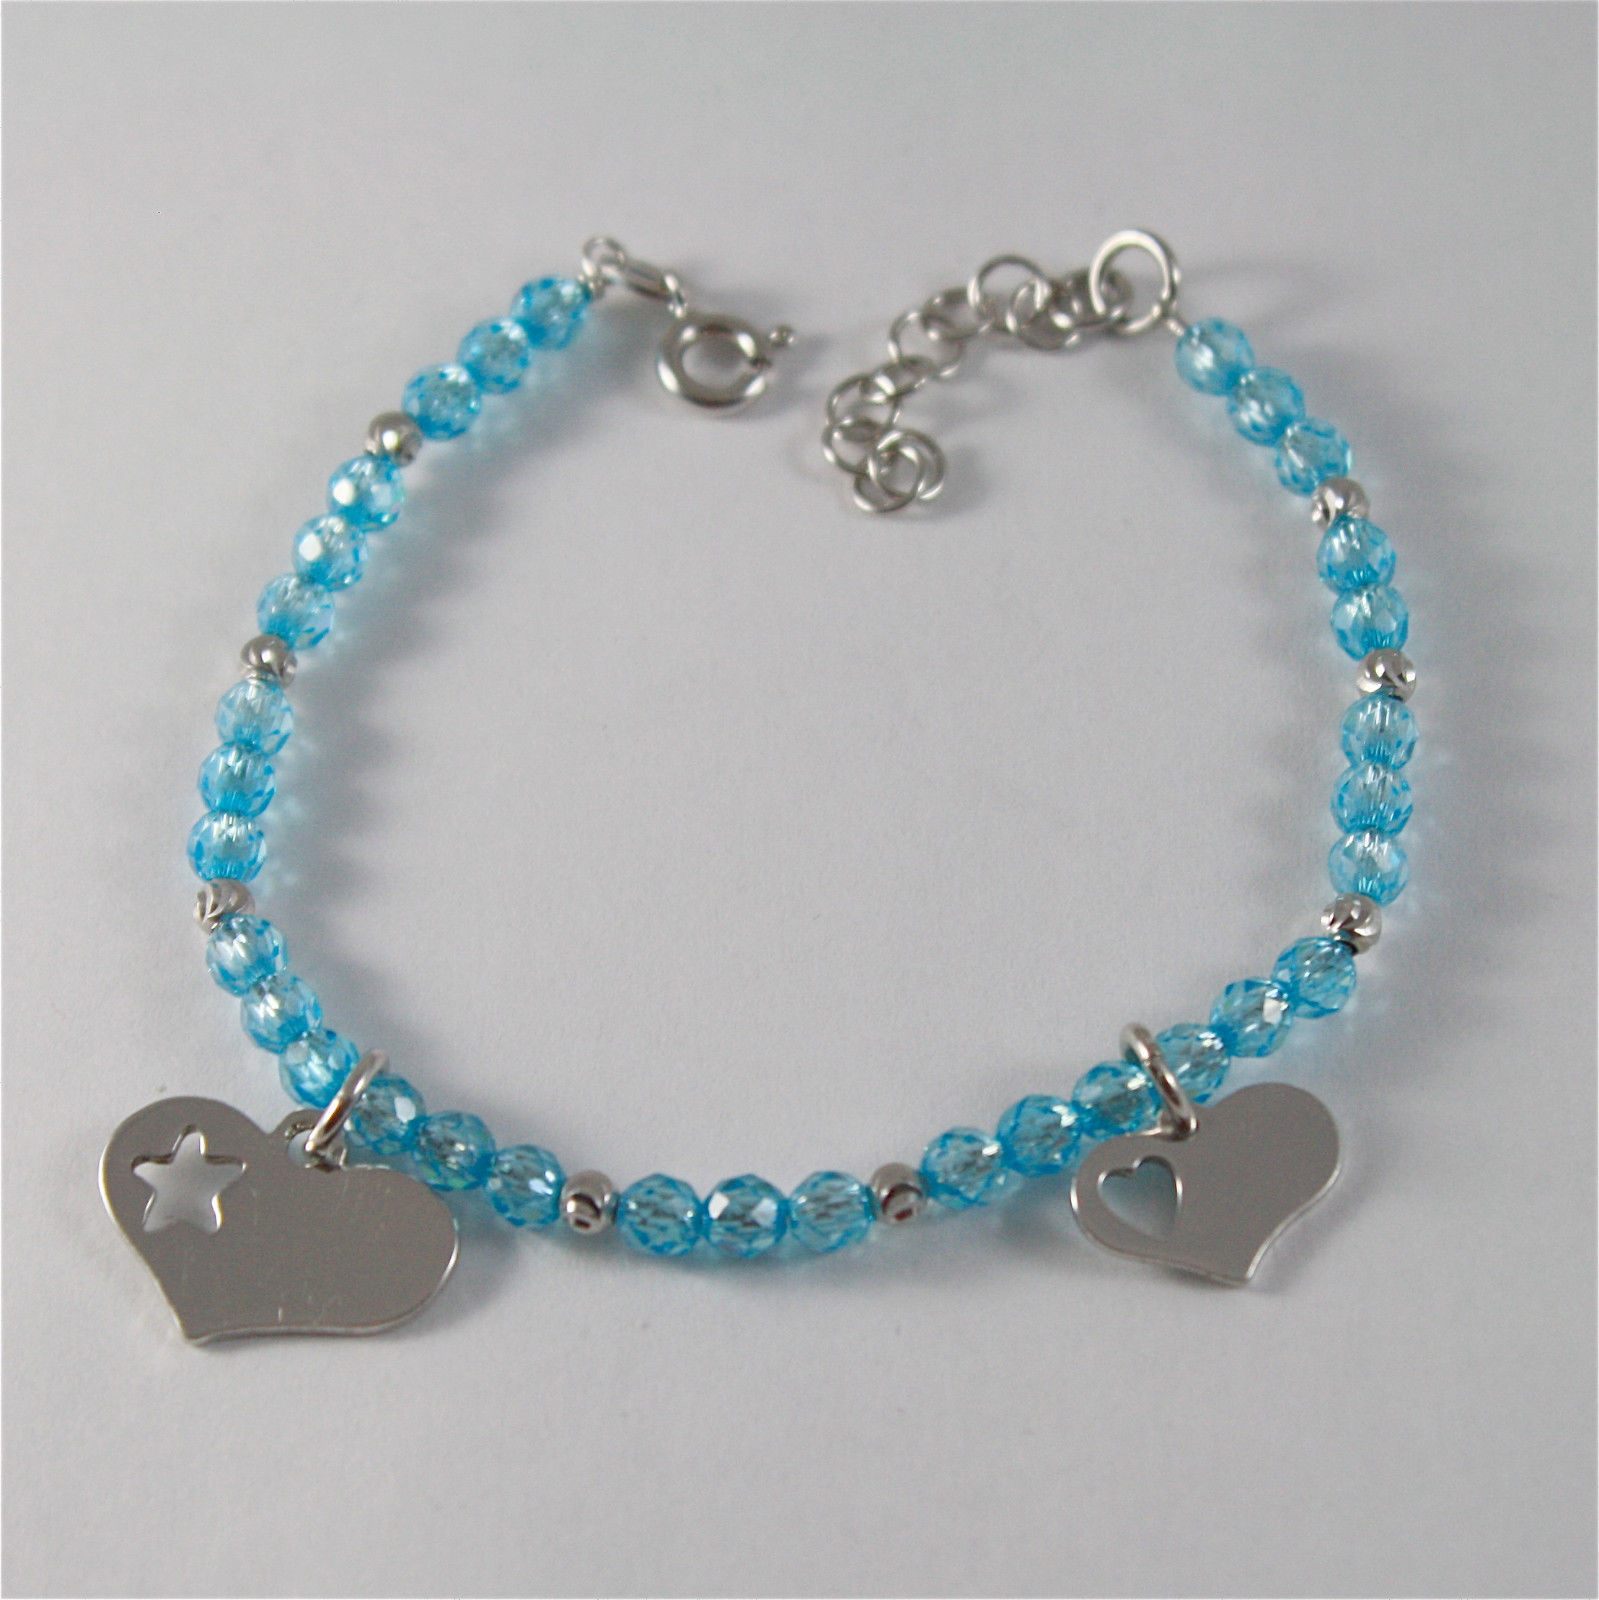 925 SILVER BRACELET WITH HEARTS AND BLUE CUBIC ZIRCONIA MADE IN ITALY 59,00 USD